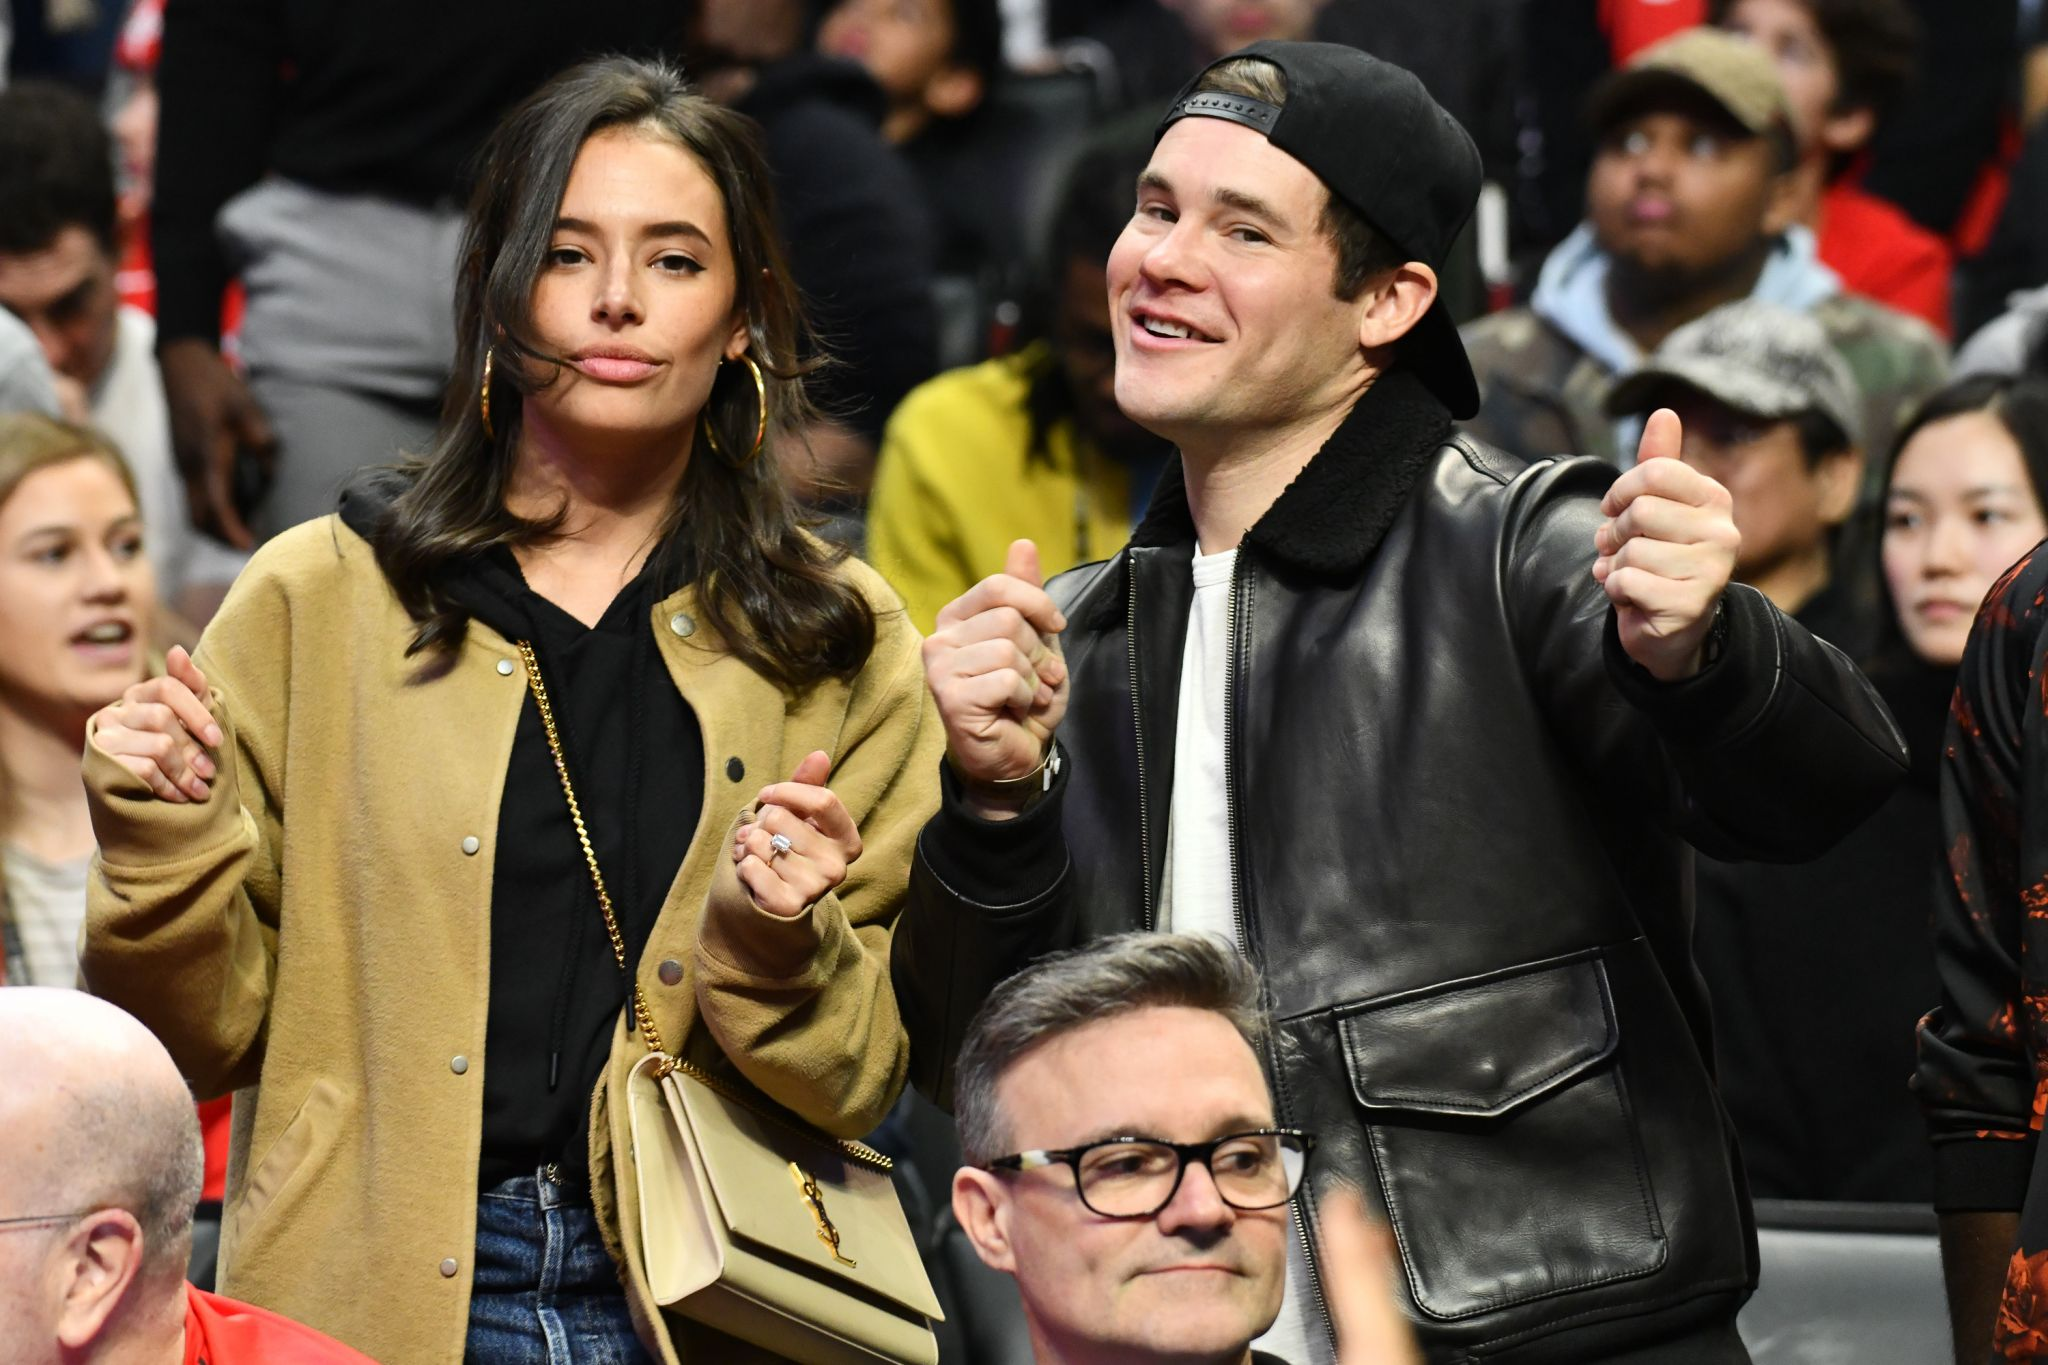 A look at the celebrities at the Rockets-Clippers game